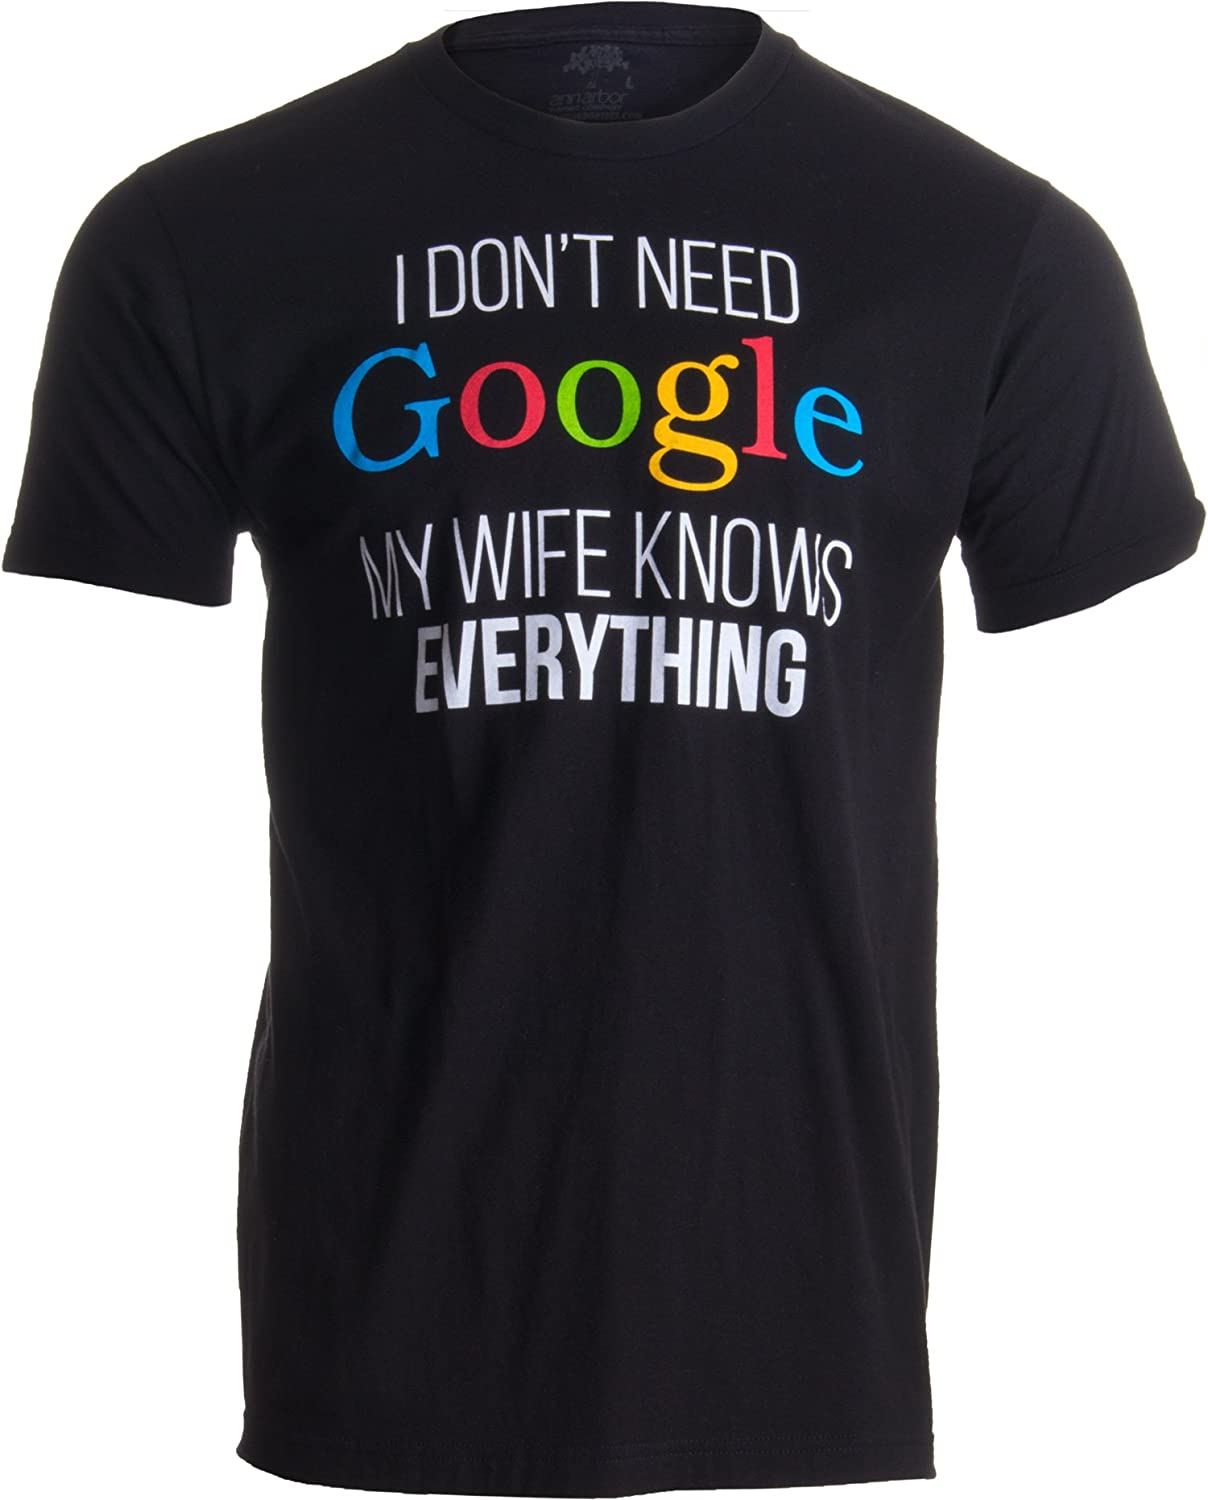 ca80b3847d Amazon.com: I Don't Need Google, My Wife Knows Everything! | Funny Husband  Dad Groom T-Shirt: Clothing